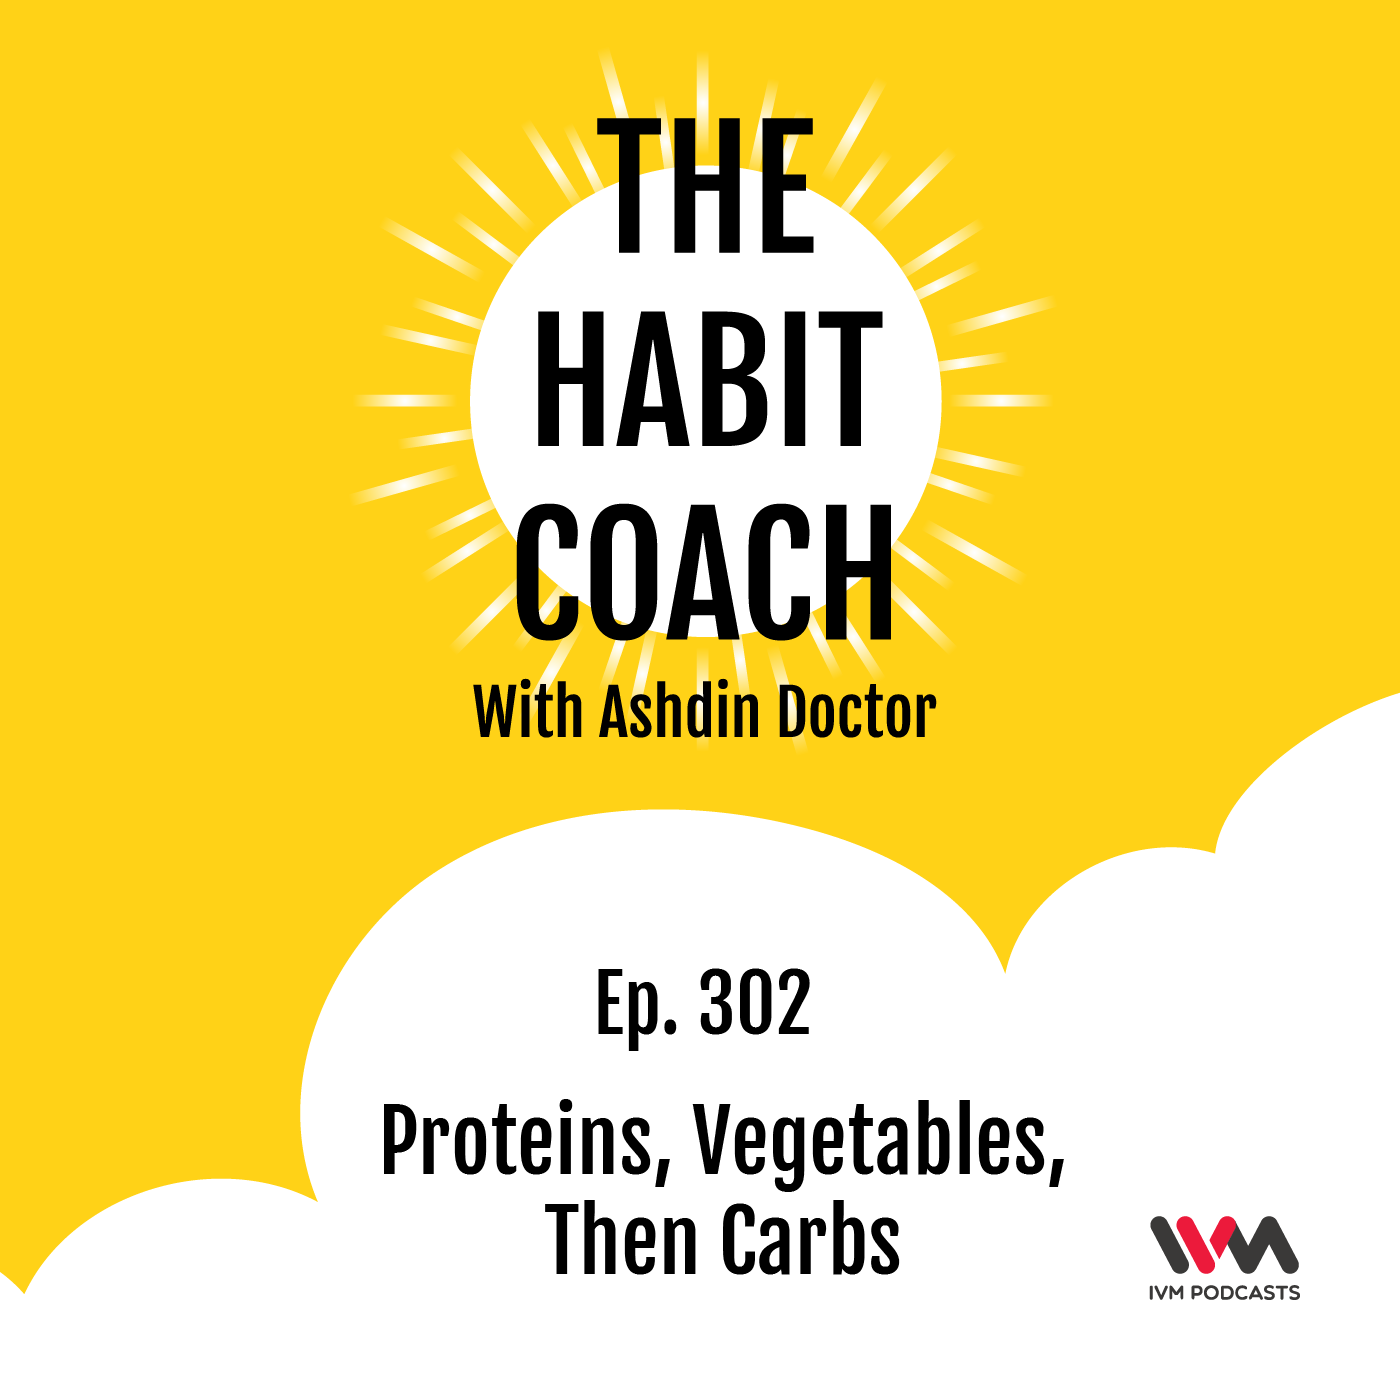 Ep. 302: Proteins, Vegetables, Then Carbs